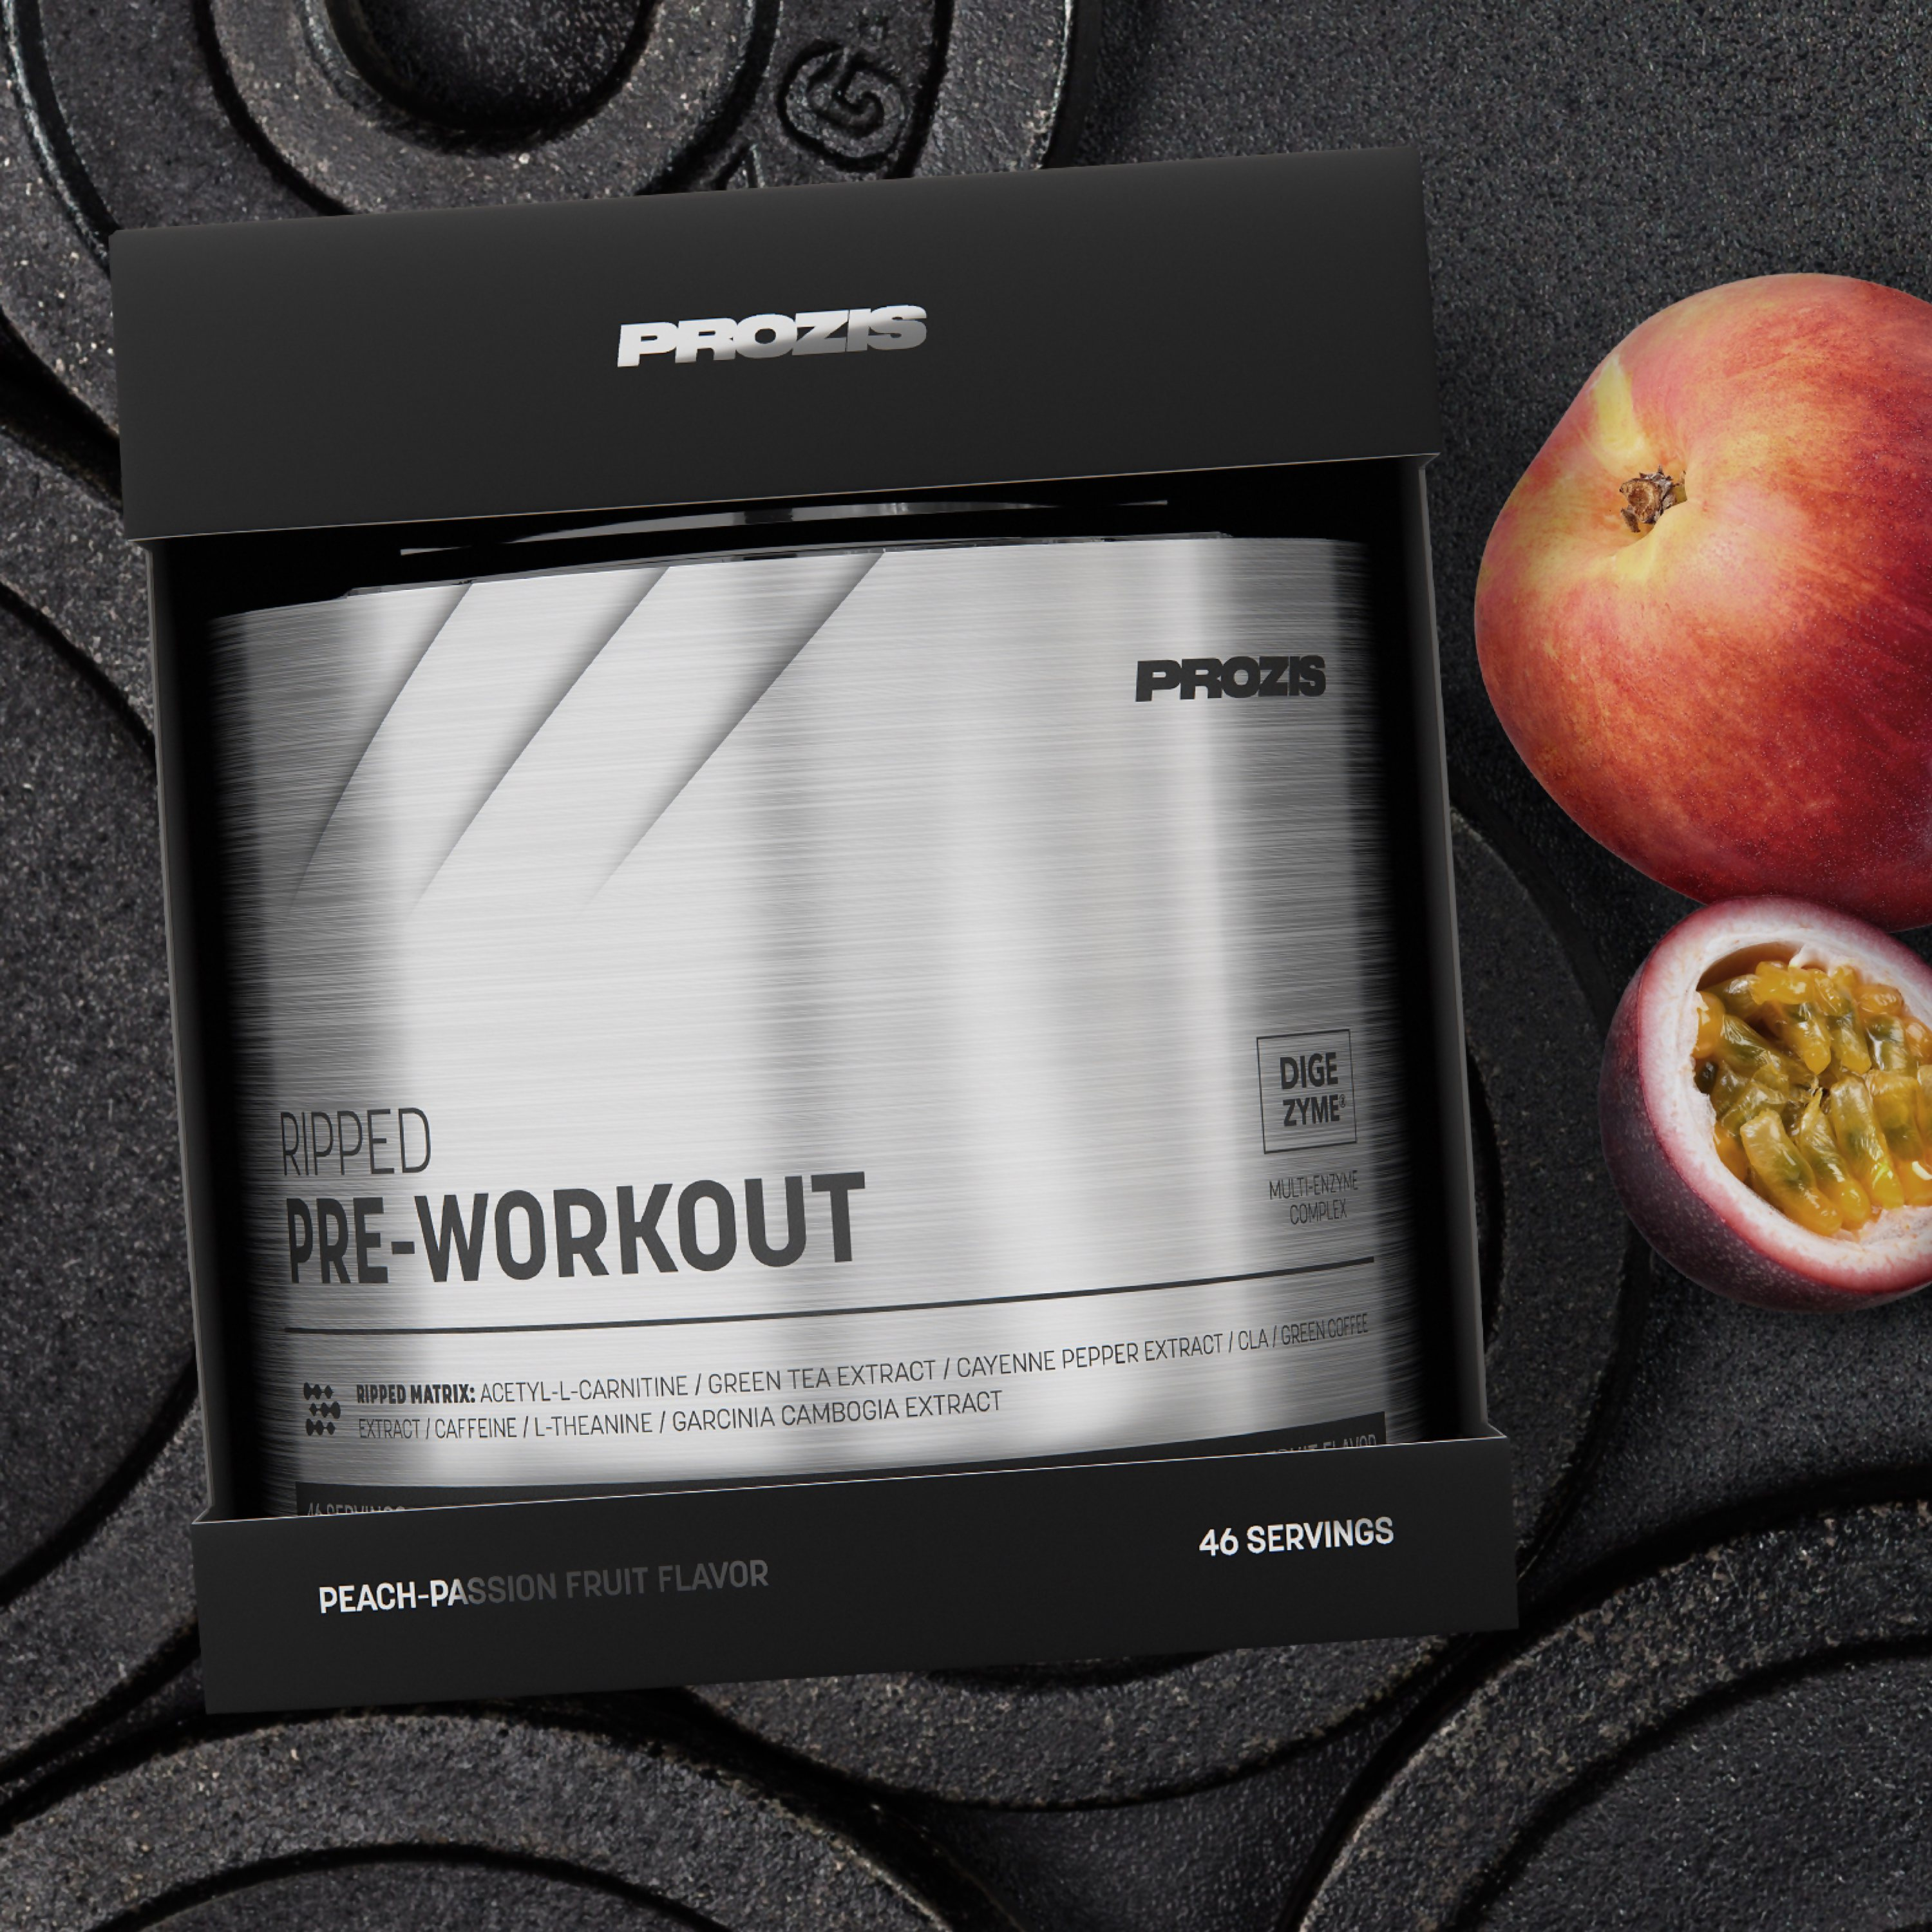 Ripped Pre Workout 46 Servings Build Muscle Prozis